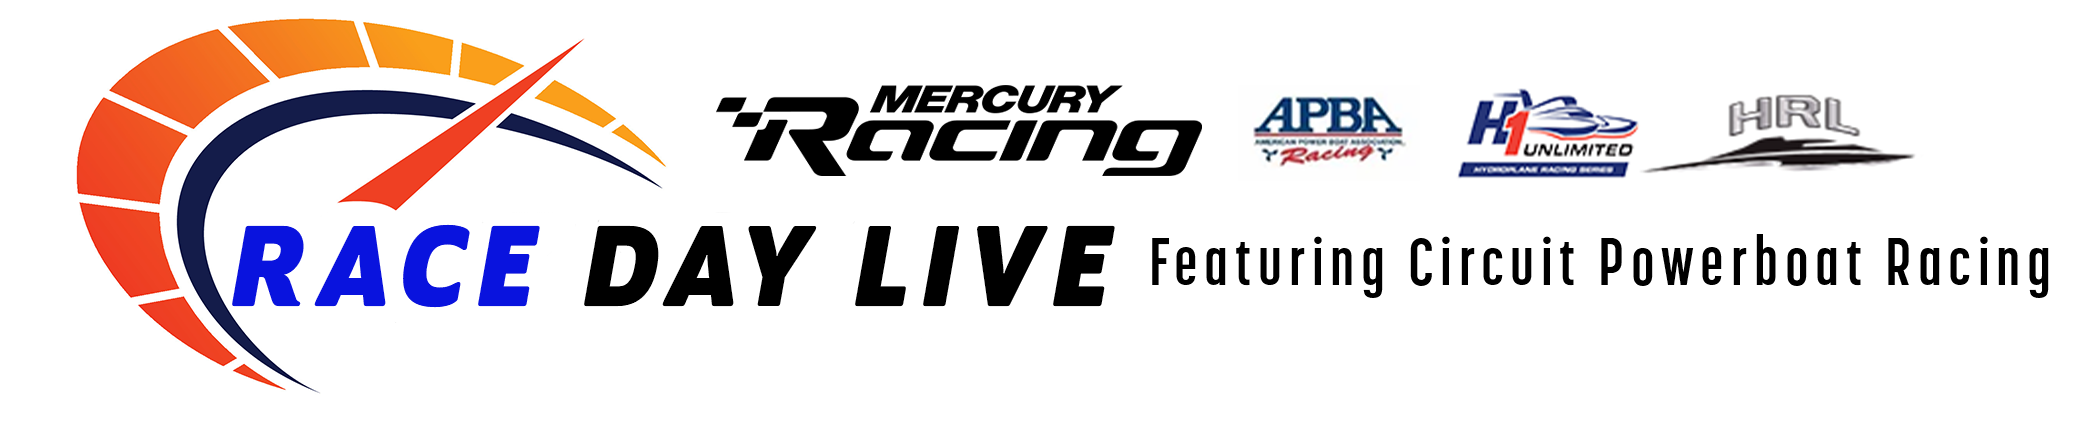 Race Day Live